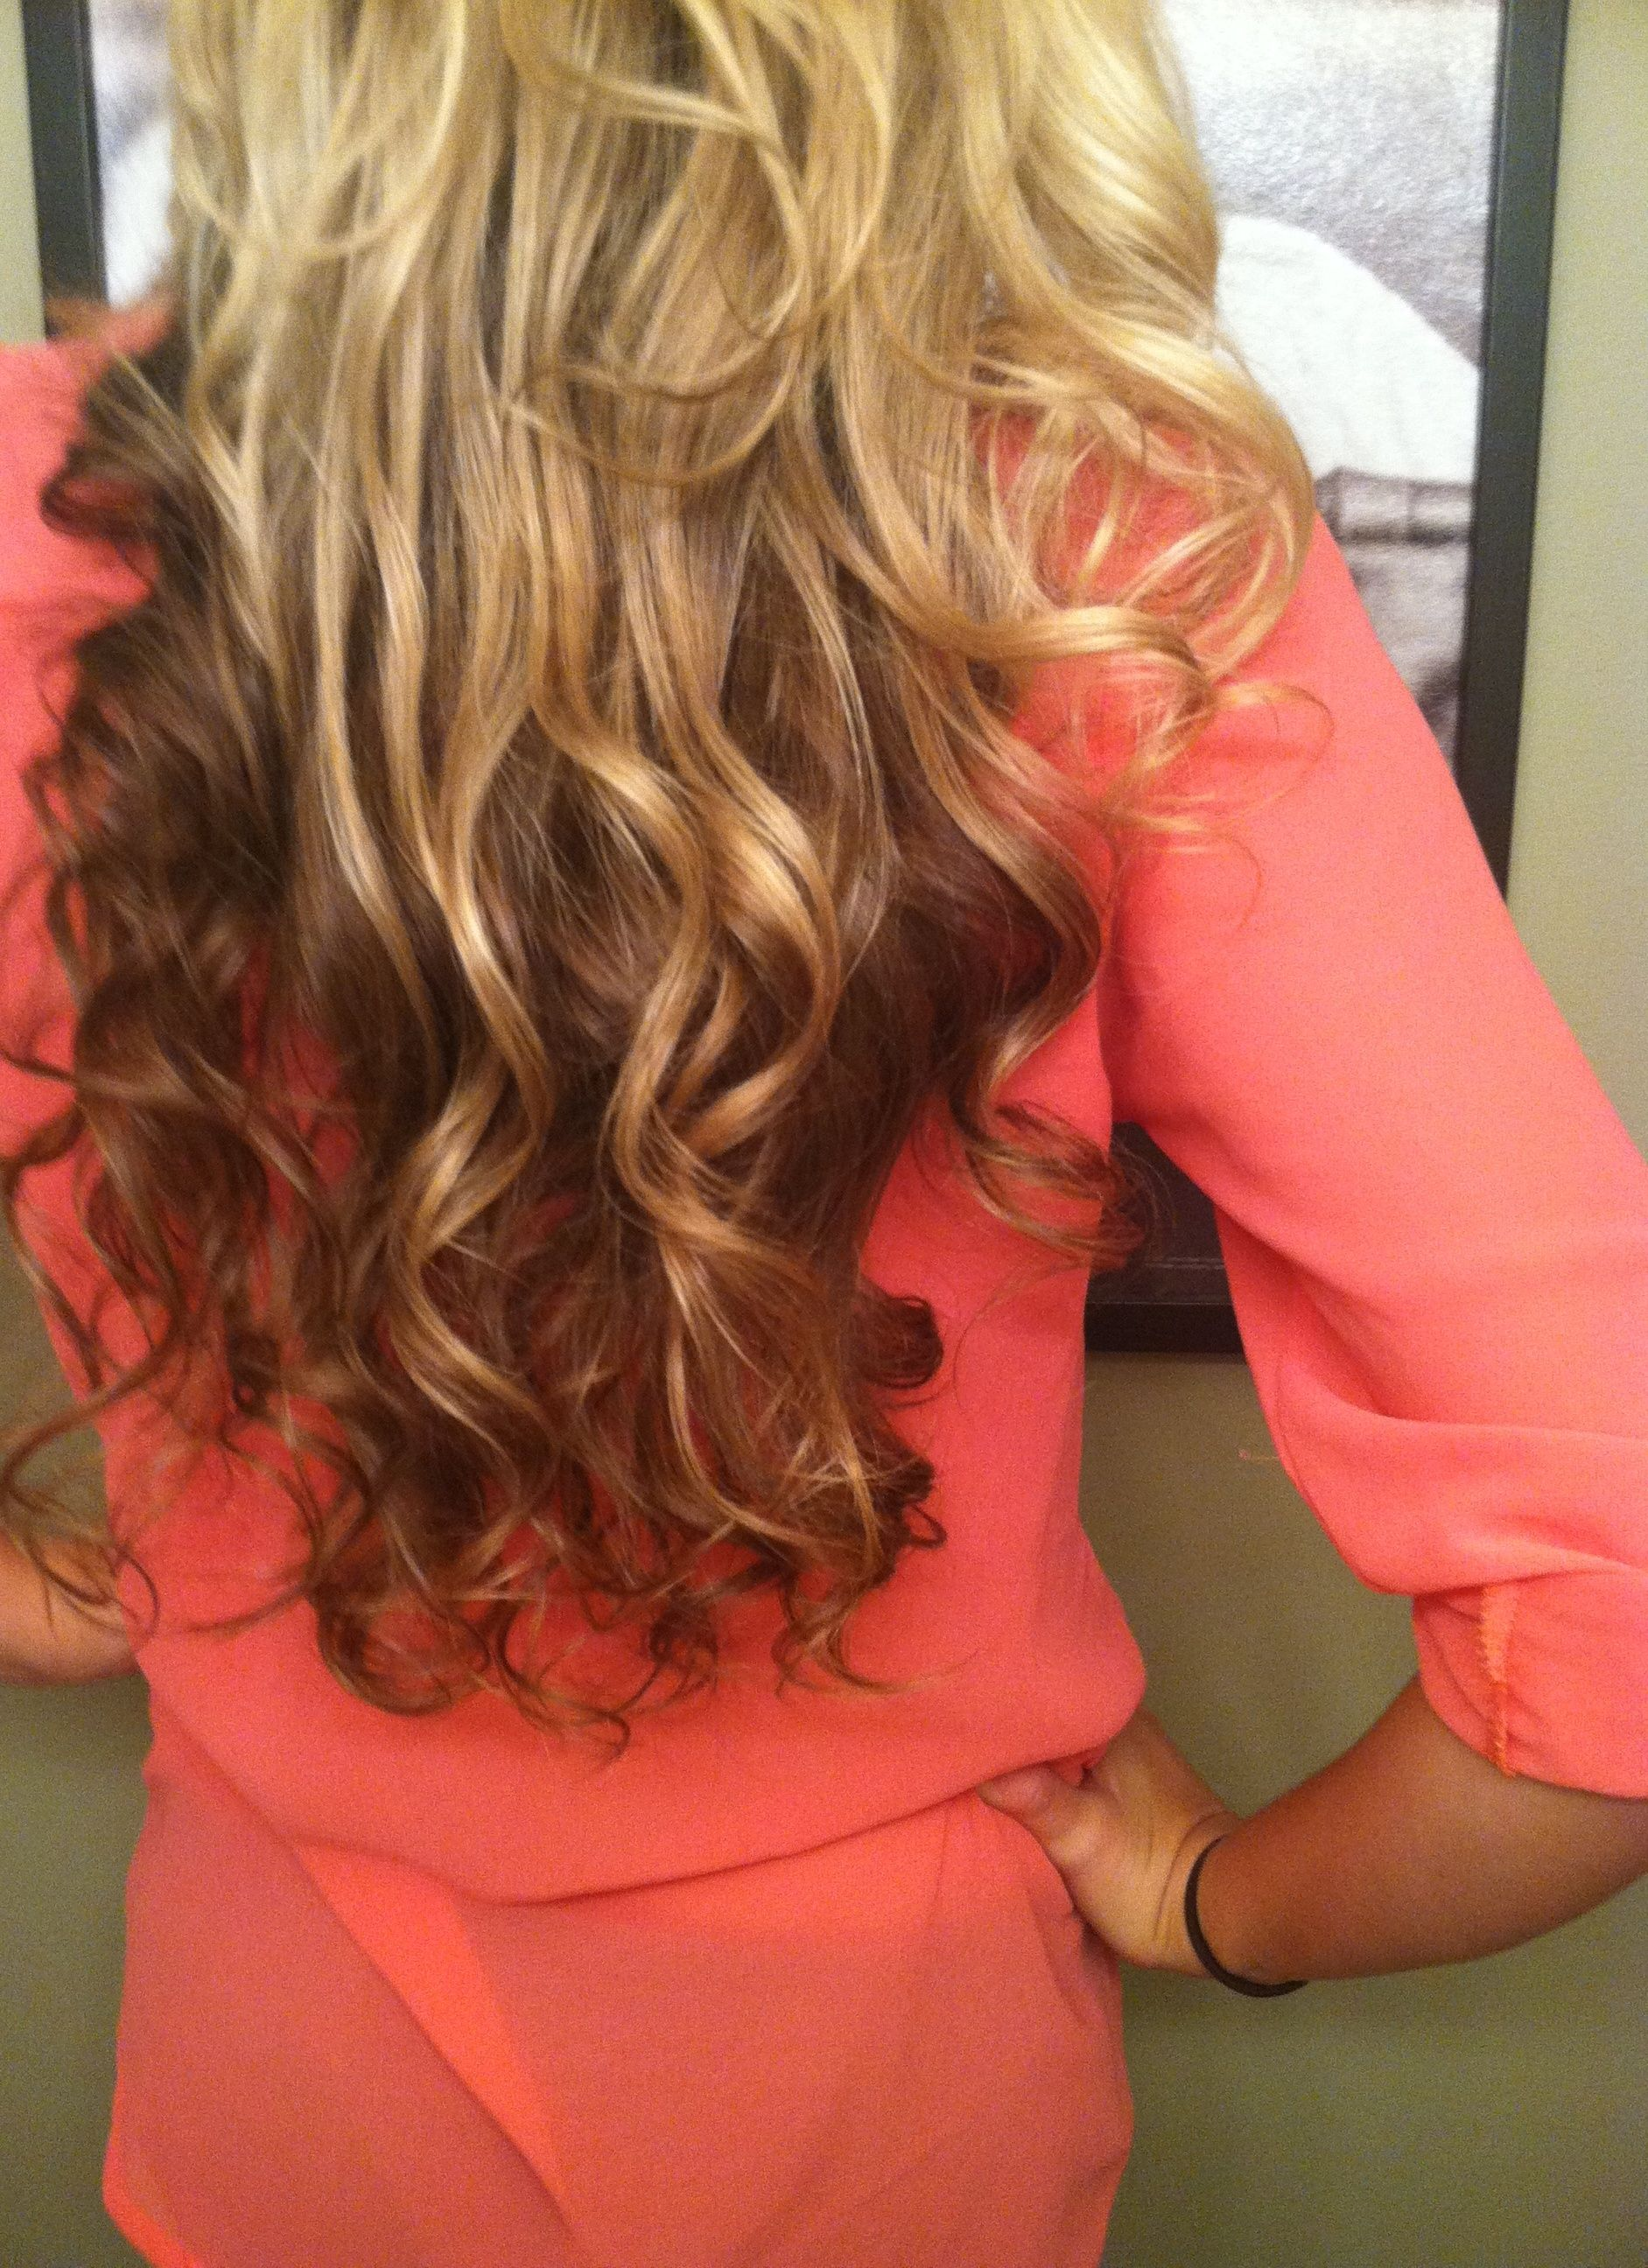 Amazing curls from a straightener hairstyles my style pinterest